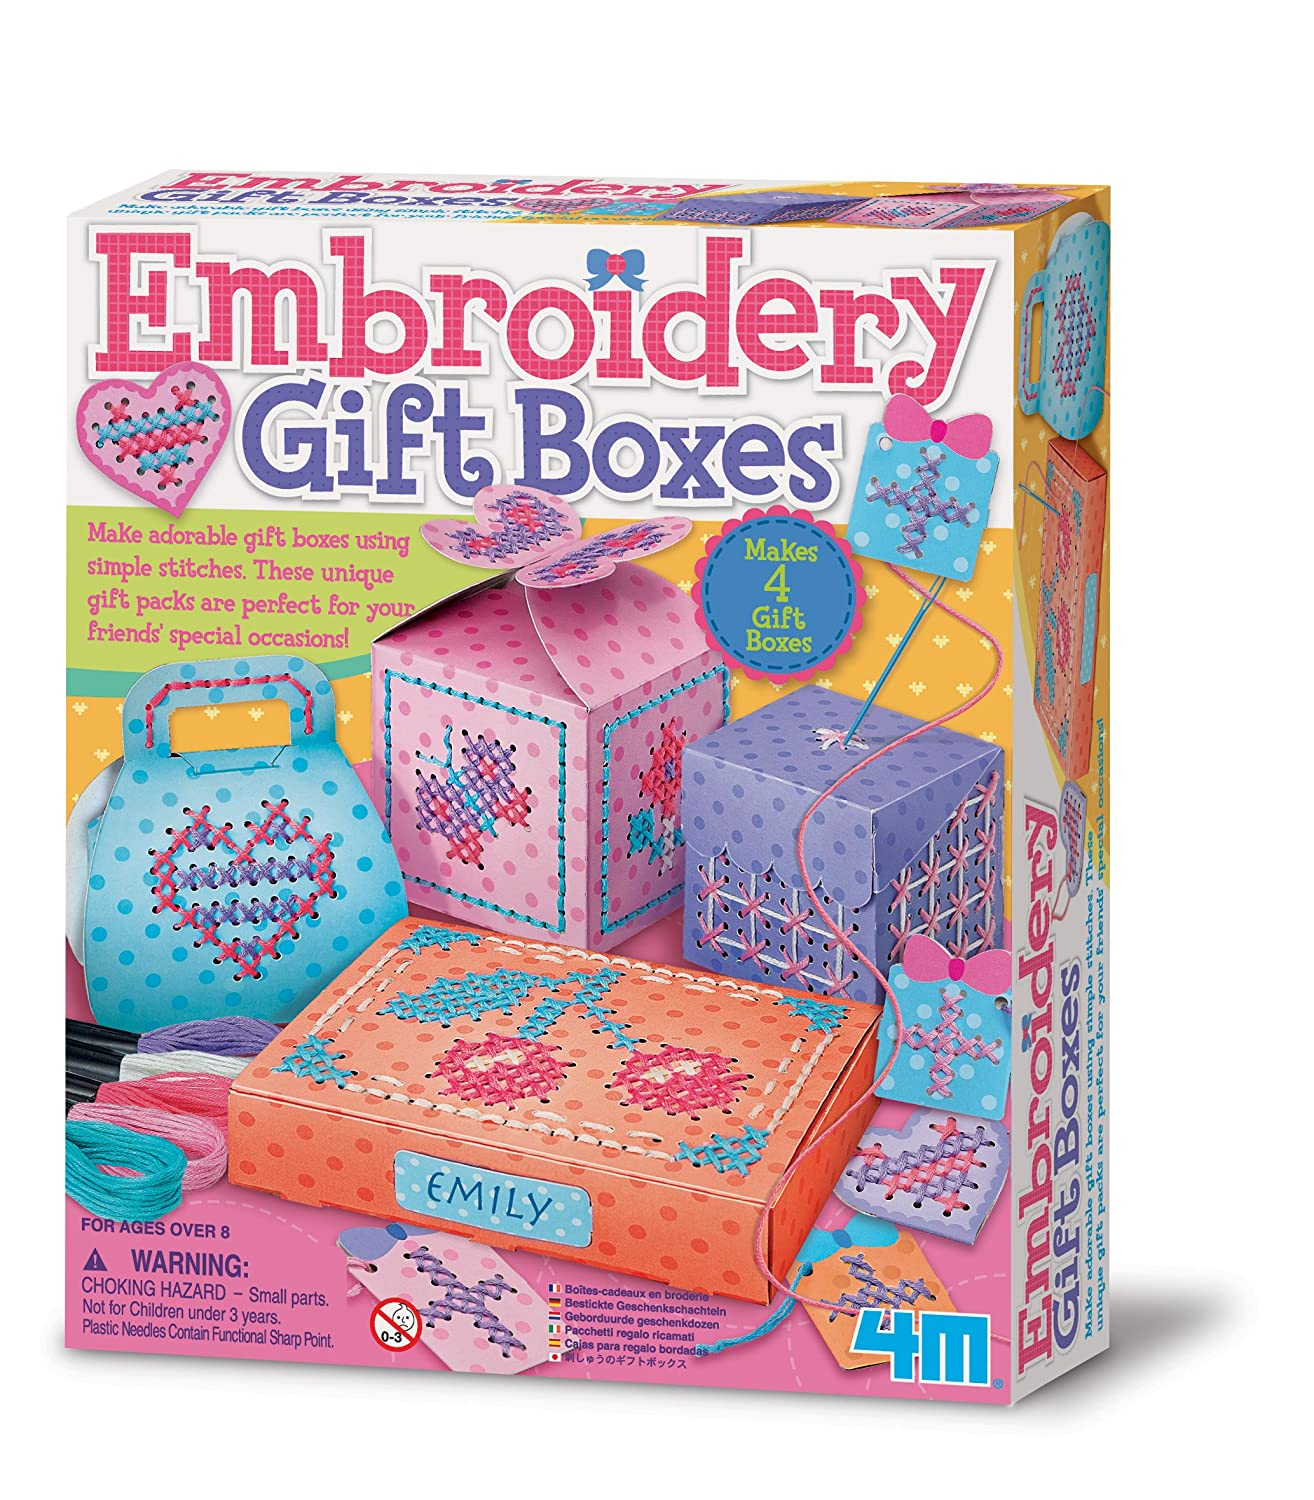 4M Make Your Own Embroidery Gift Boxes - Simple Sewing Kit - New for 2015 Creative - Arts & Crafts Present Gift Idea For Treat, Reward or Pocket Money Age 5+ Girl Girls Kids Children Child